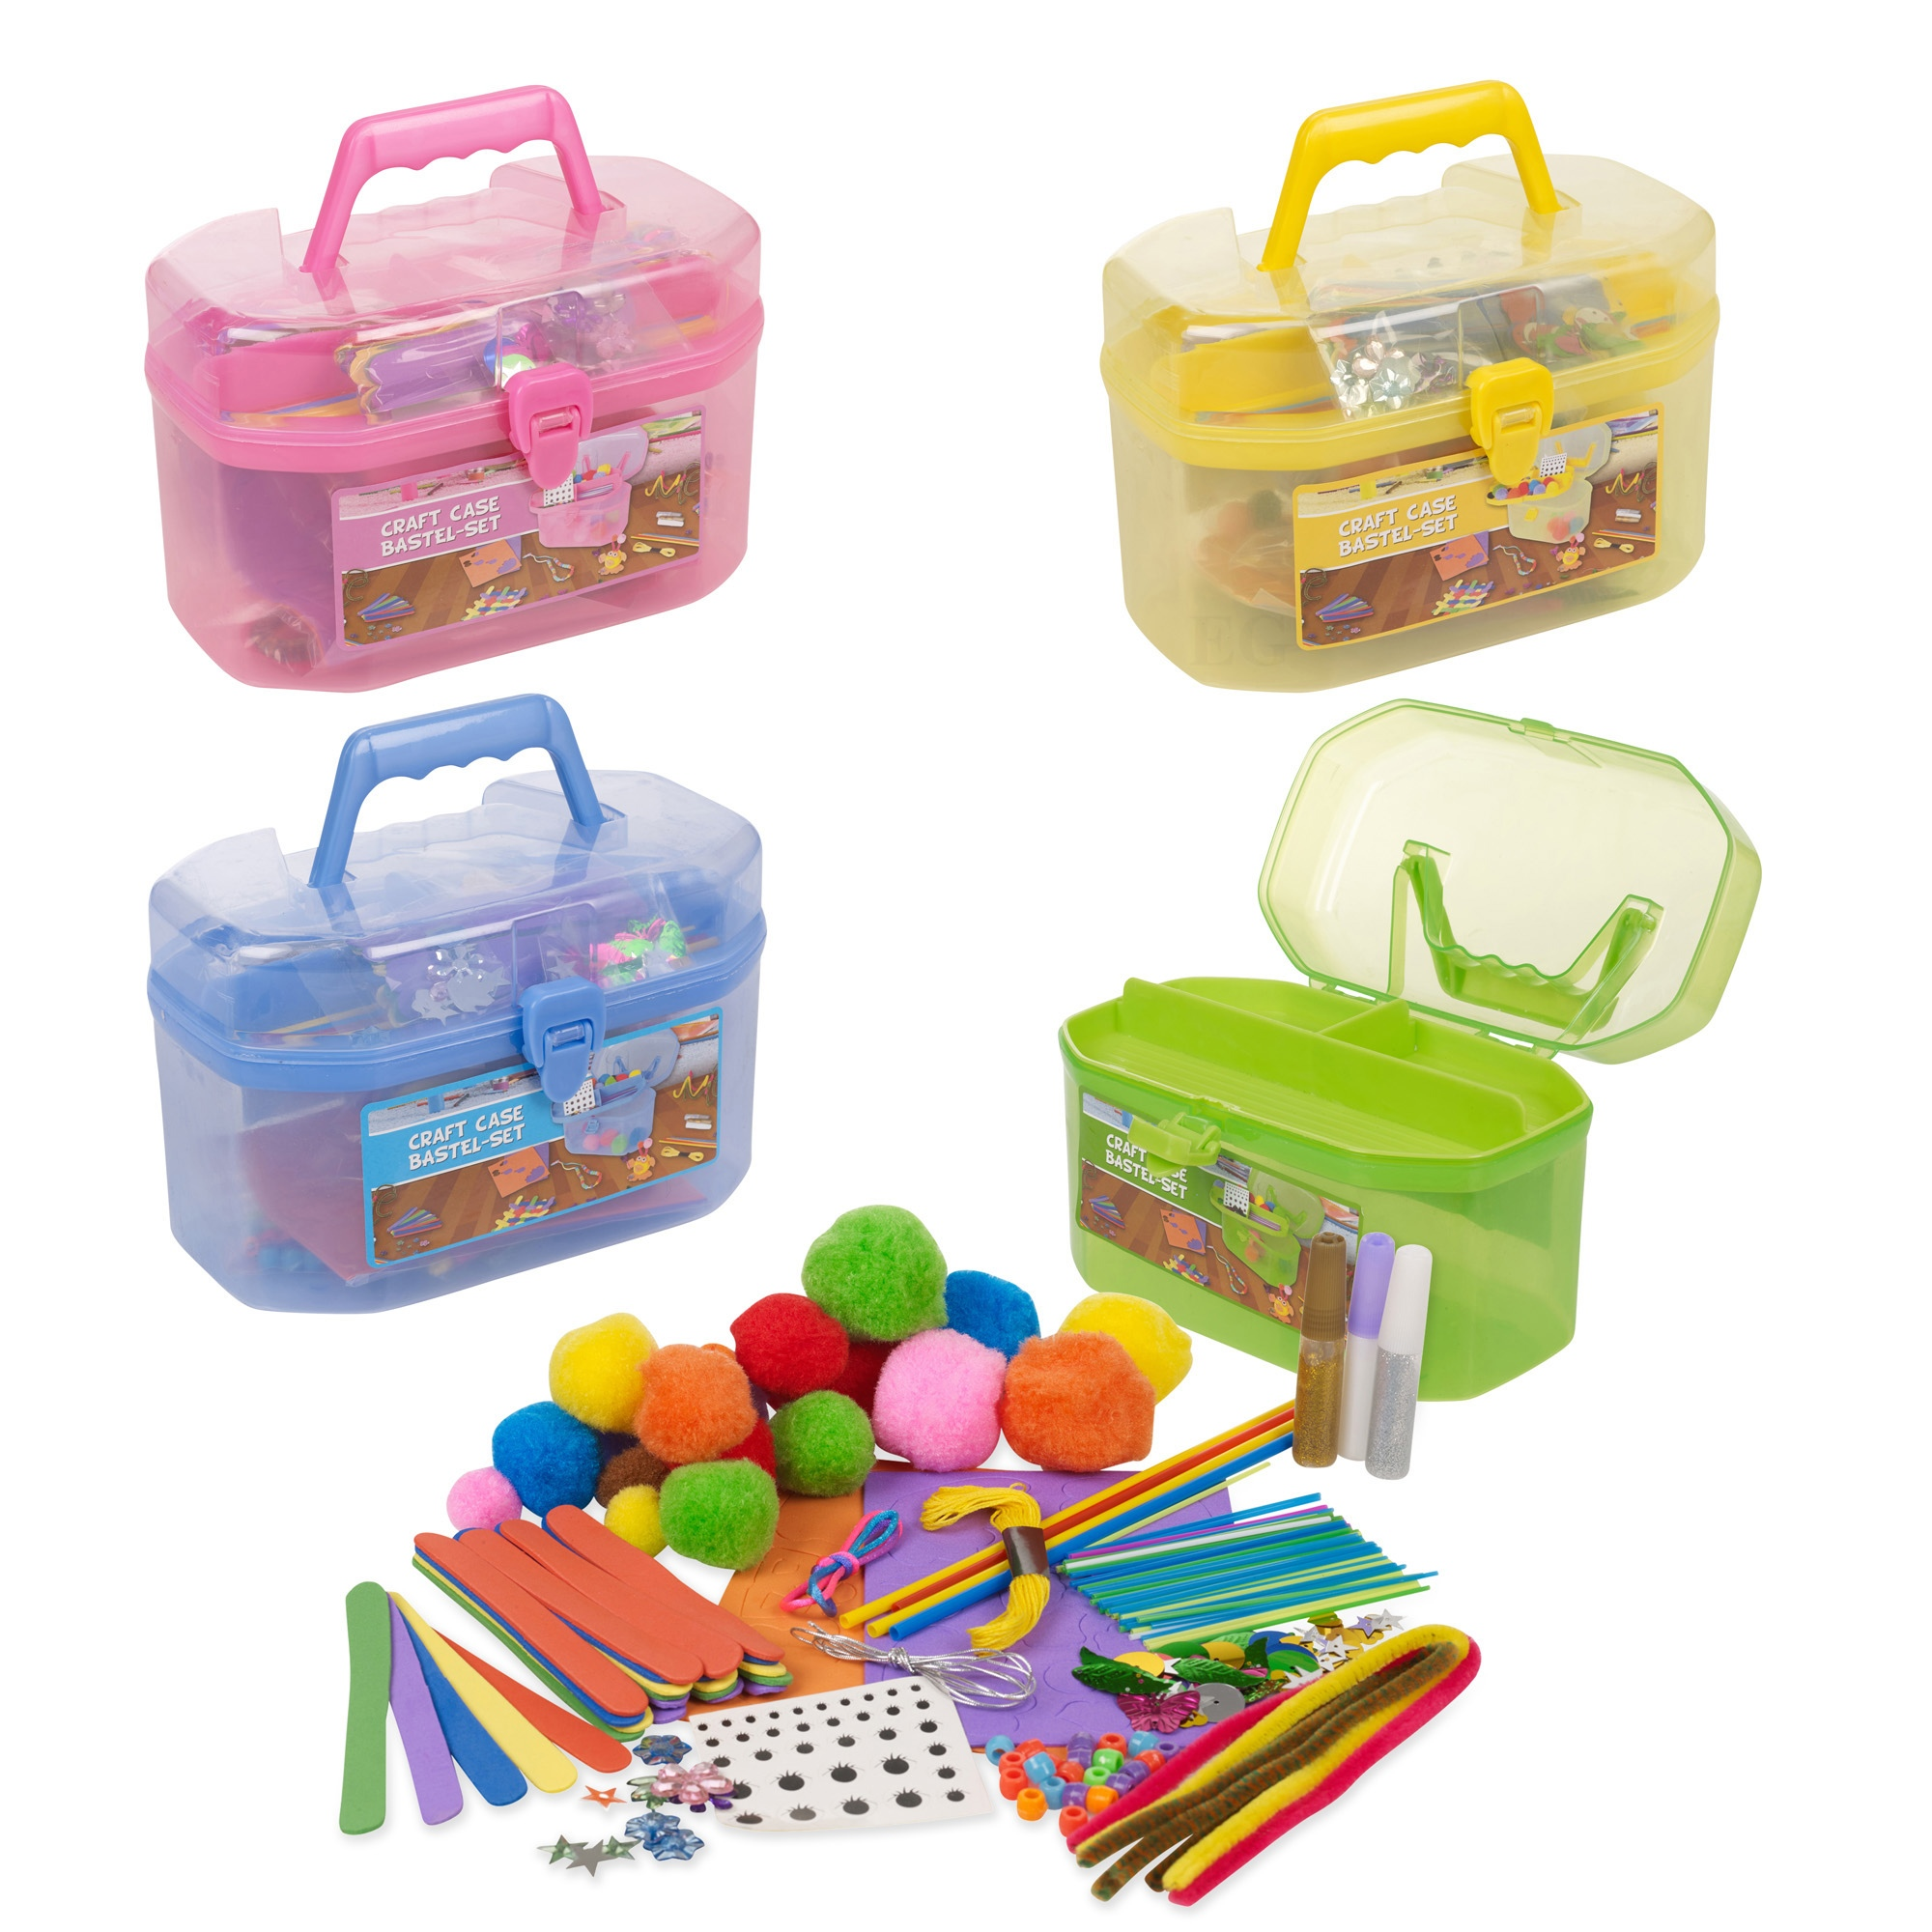 127 piece children 39 s arts craft set case carry handle